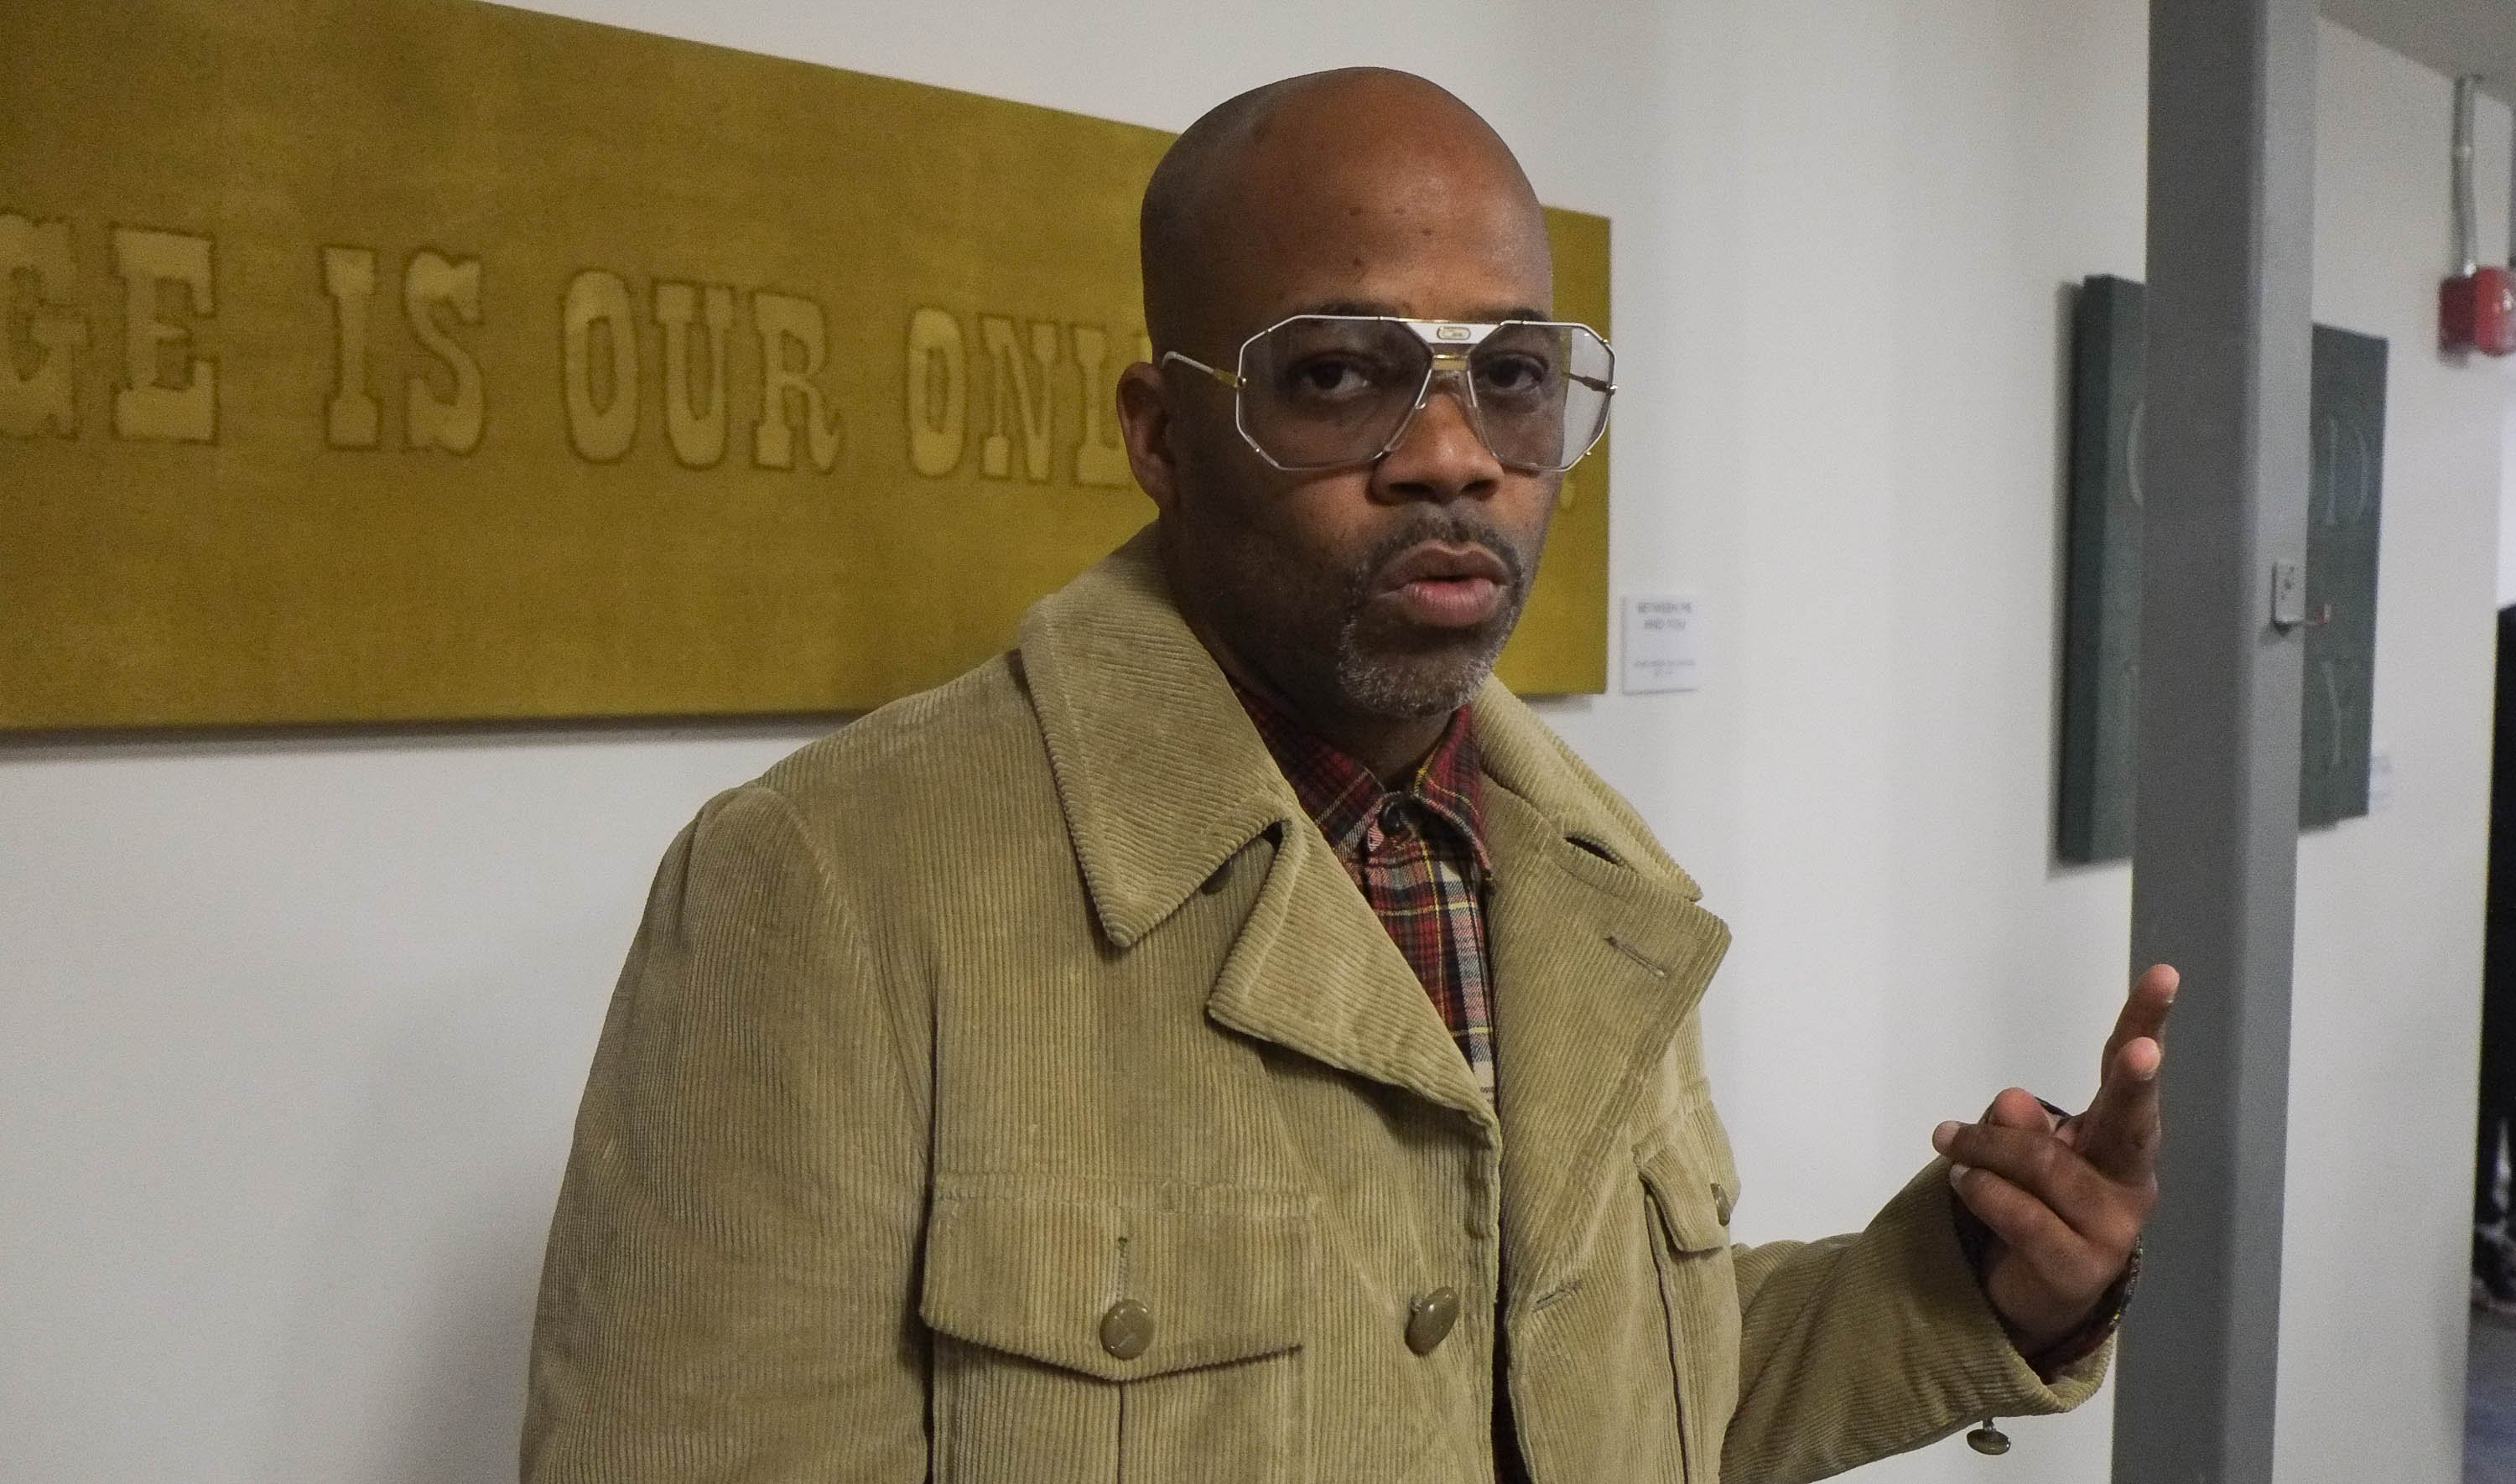 Damon Dash attending an art exhibition in New York in March 2014. | Photo: Getty Images